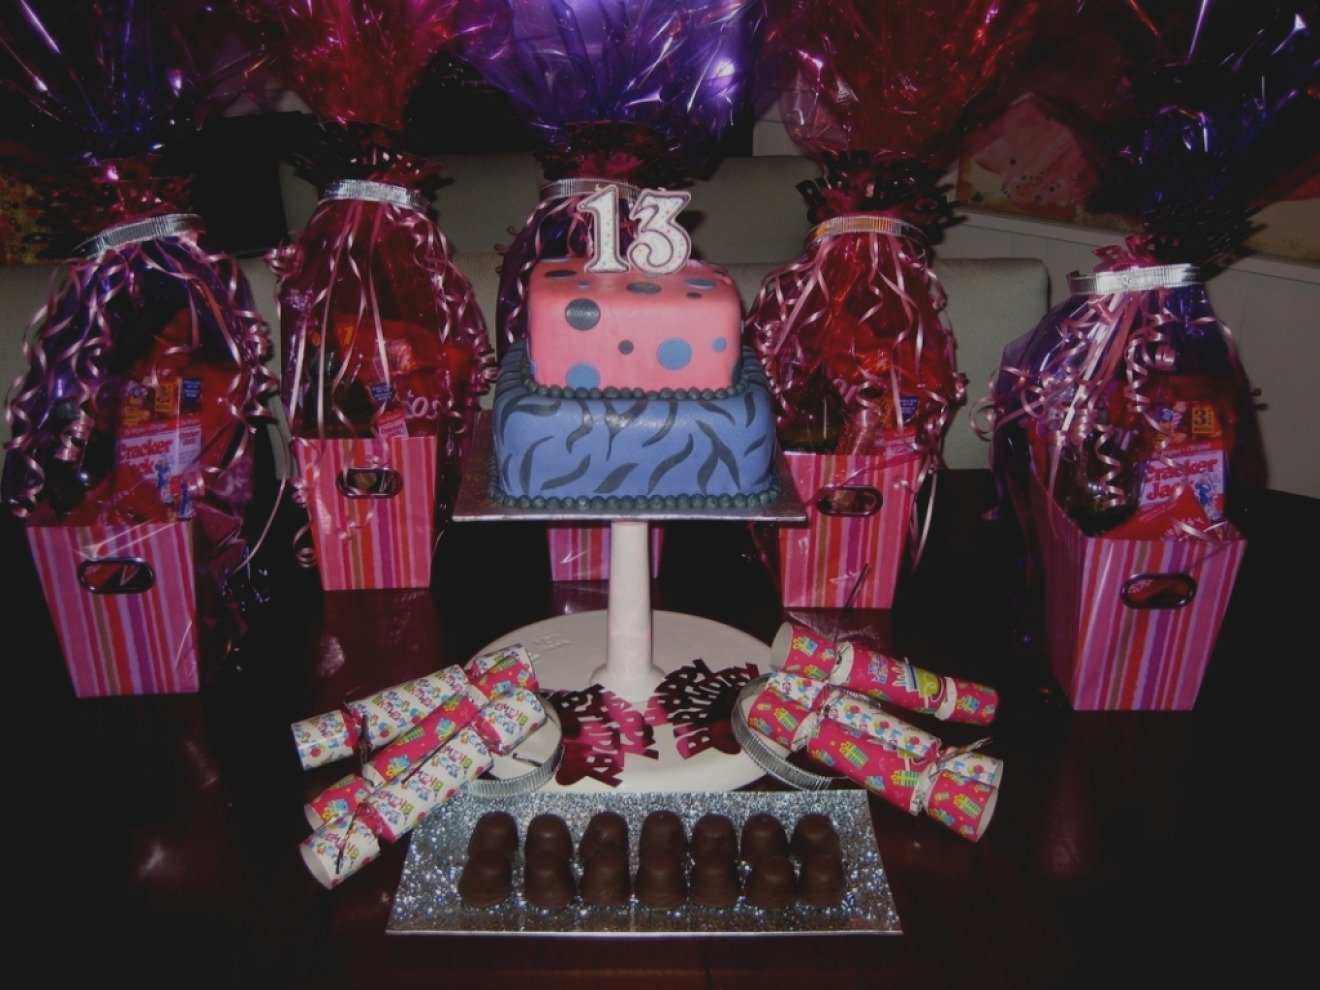 10 Elegant Ideas For A 13Th Birthday Party For A Girl awesome ideas for a 13th birthday party 10 popular tween girl 2021